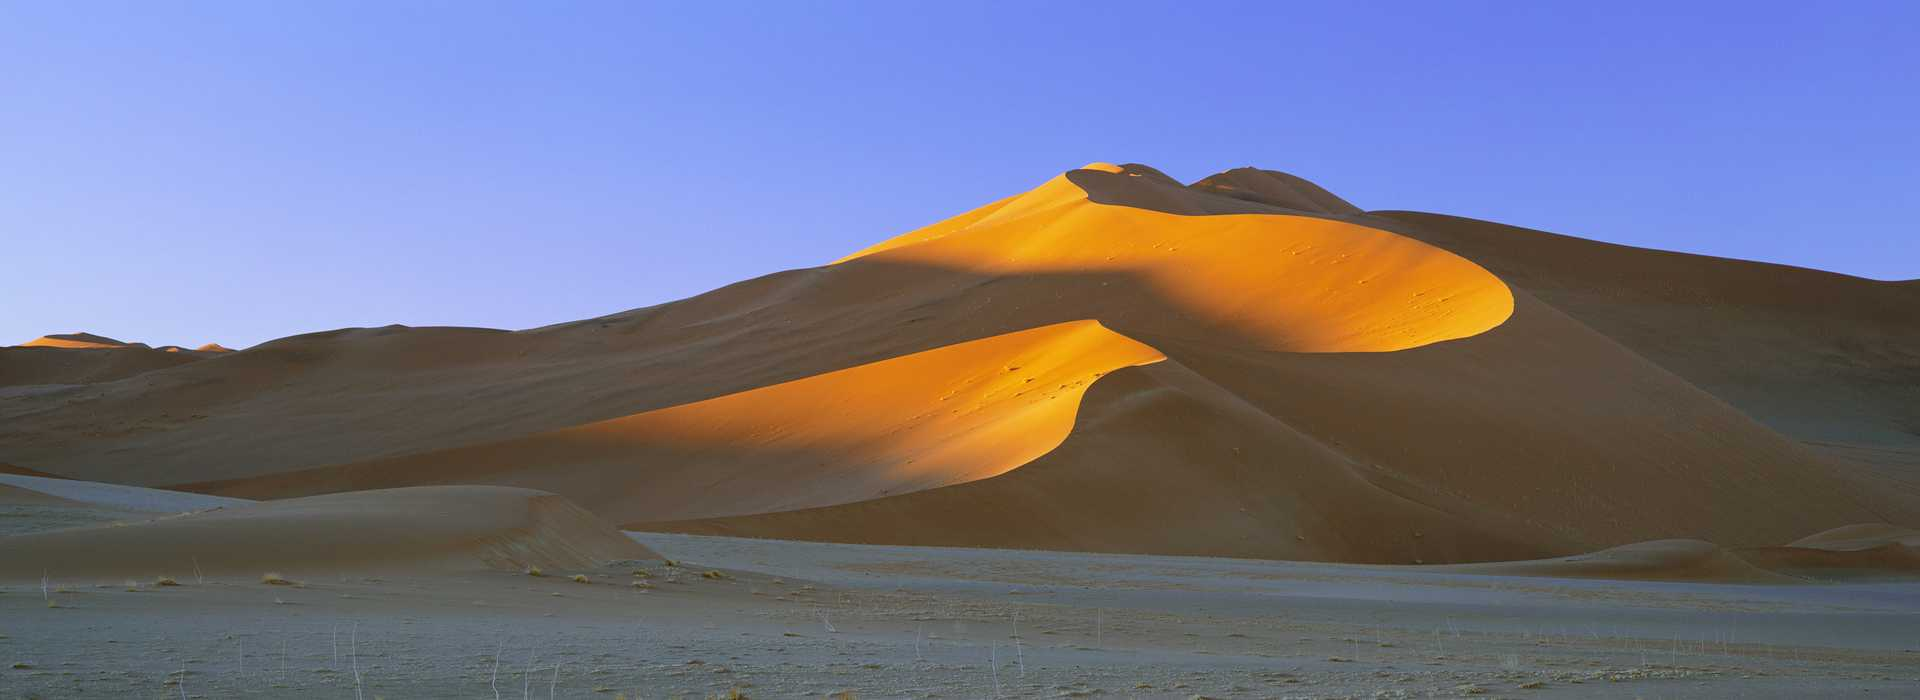 Morning Sun Catches The Sand Dunes, Namibia